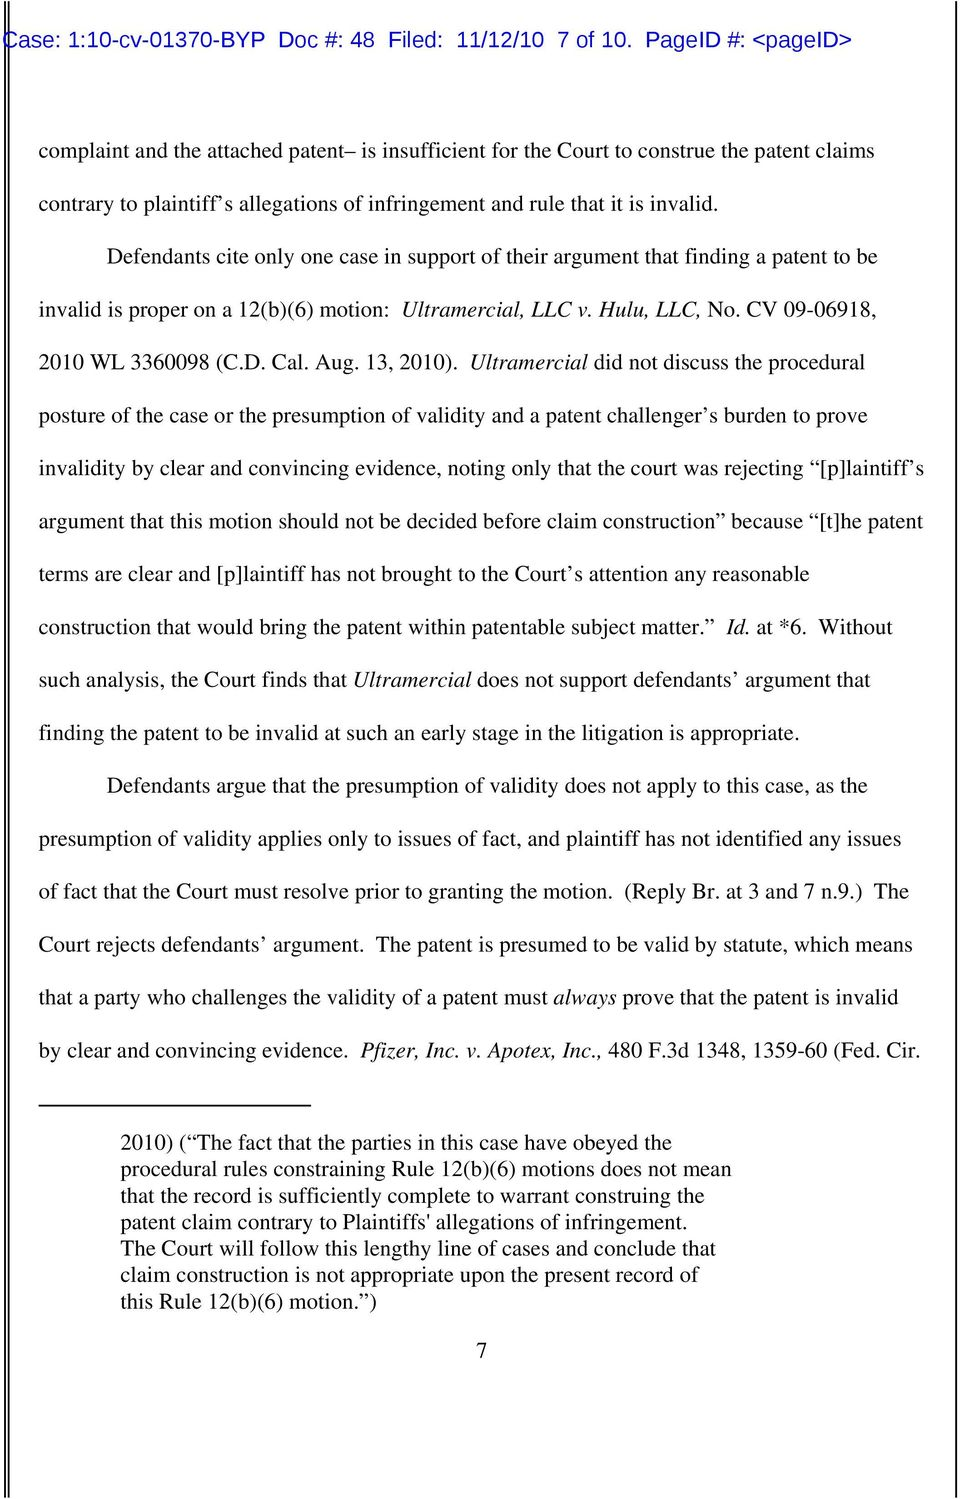 Defendants cite only one case in support of their argument that finding a patent to be invalid is proper on a 12(b)(6) motion: Ultramercial, LLC v. Hulu, LLC, No. CV 09-06918, 2010 WL 3360098 (C.D. Cal.